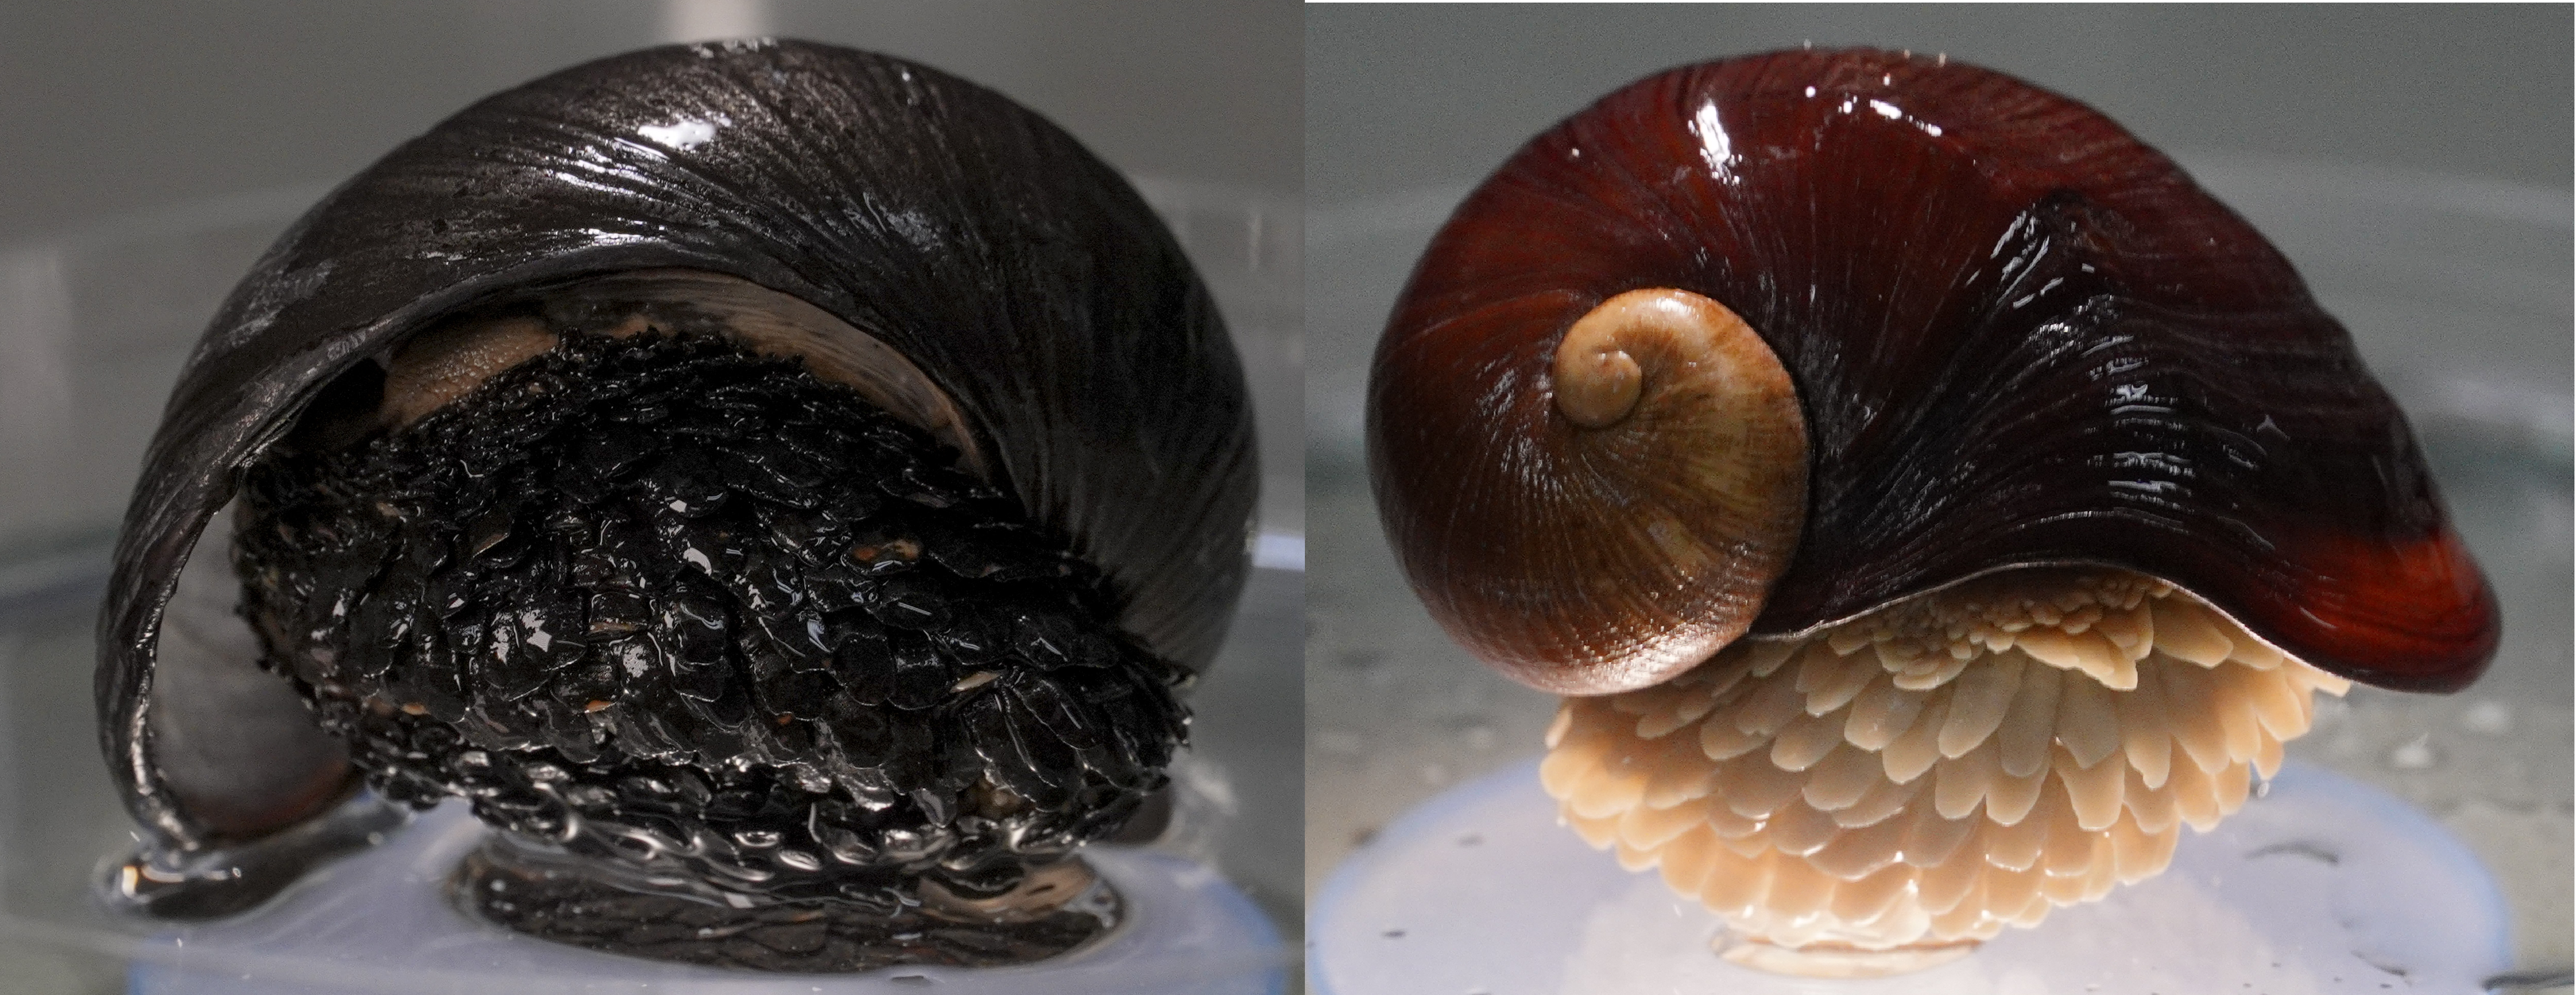 The Scaly-foot Snail on the left has incorporated the iron from the hydrothermal vent while the one on the right has not.